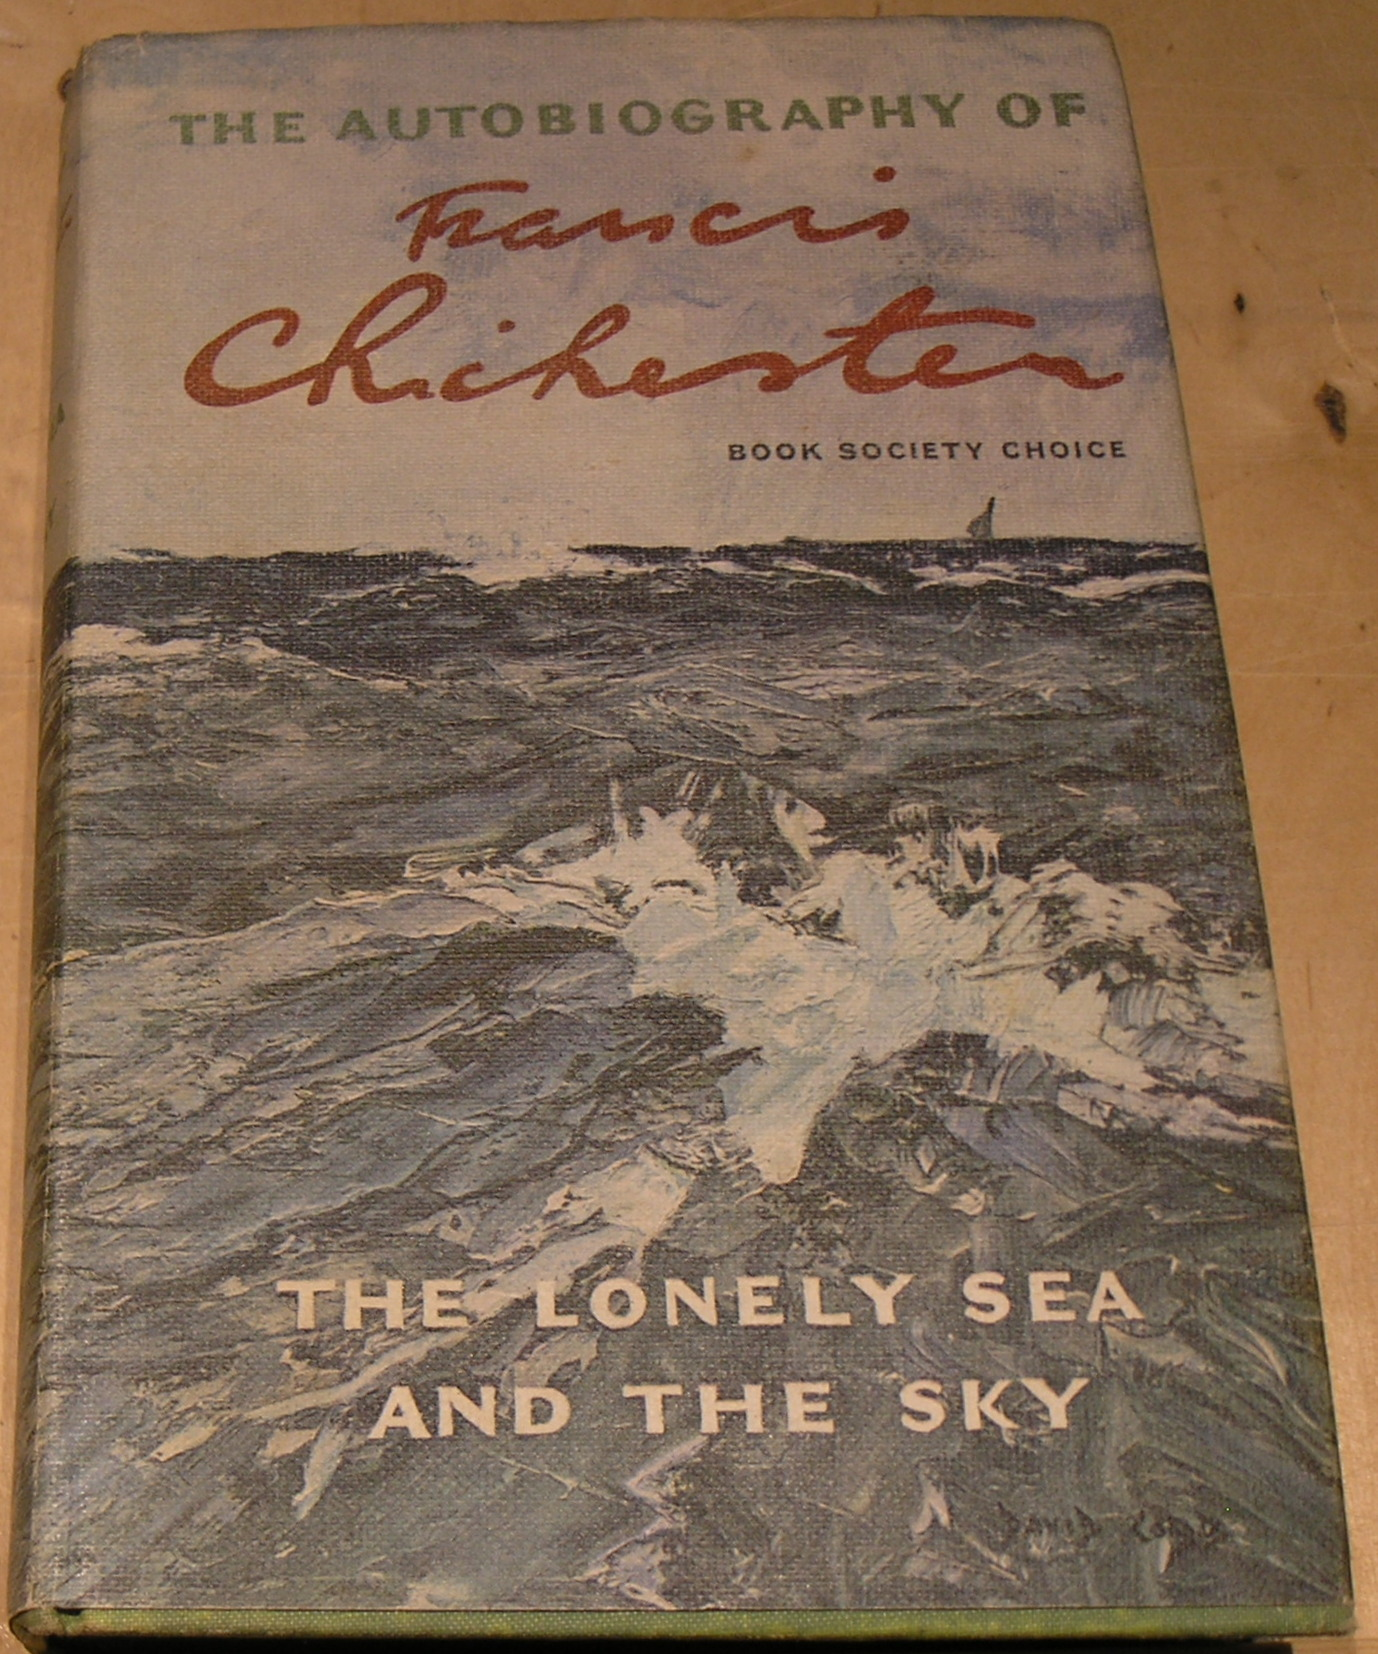 Image for The Autobiography of Francis Chichester; The Lonely Sea and the Sky.